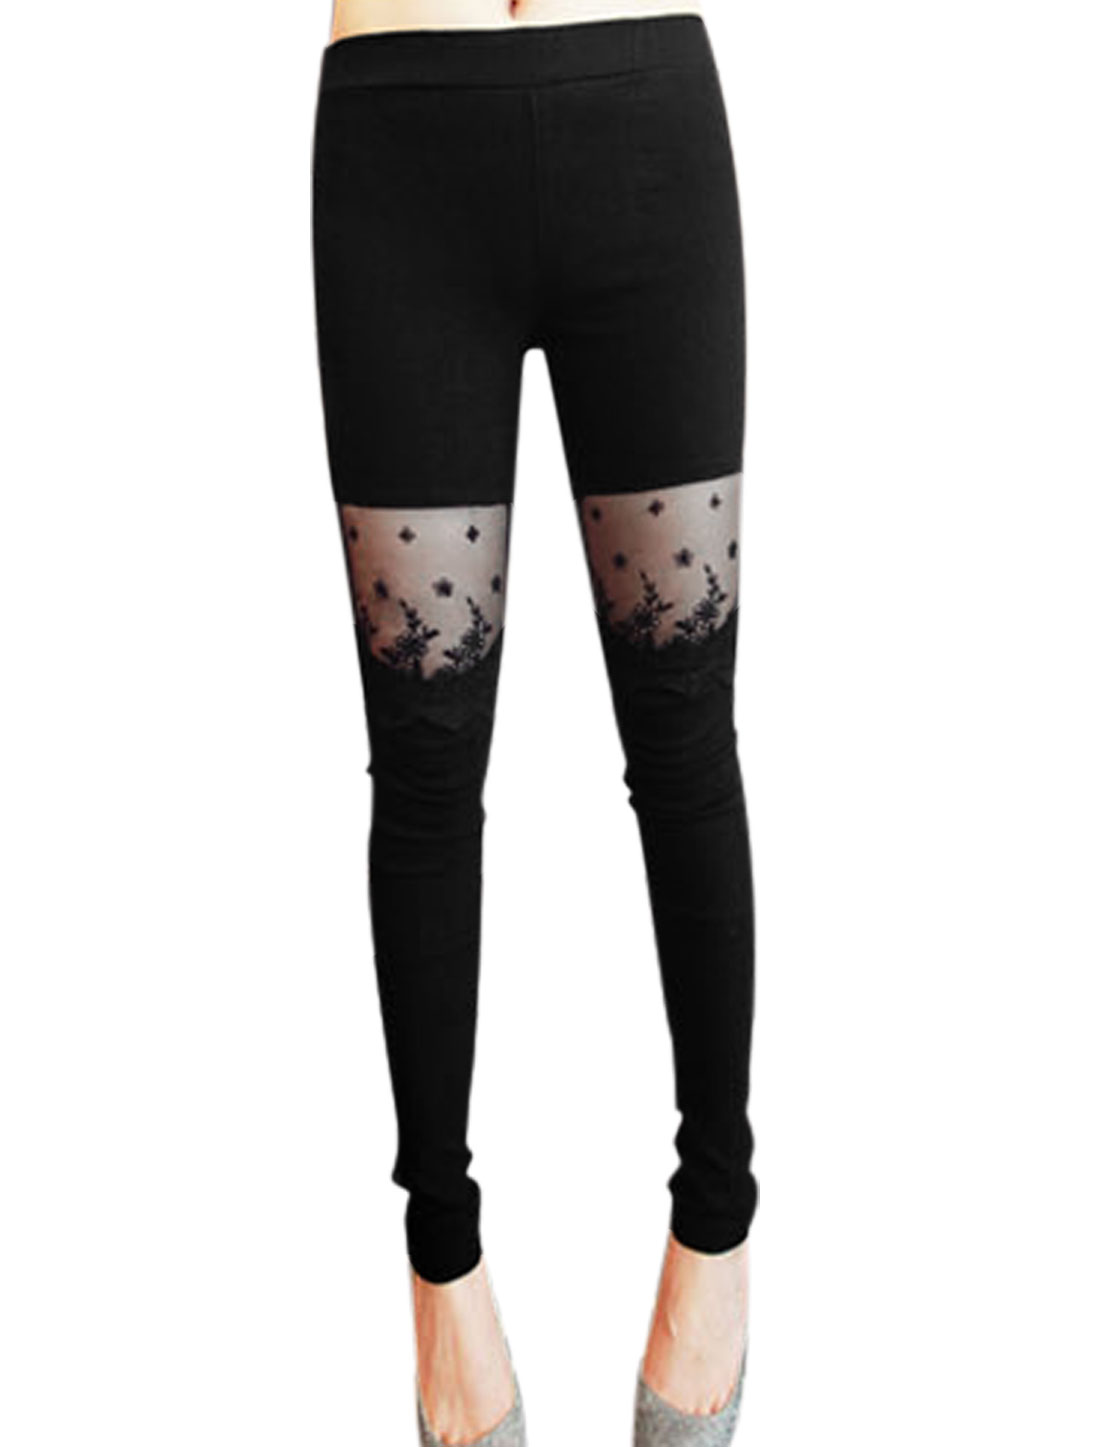 Ladies Elastic Waist Lace Patchwork Skinny Stretchy Leggings Black XS